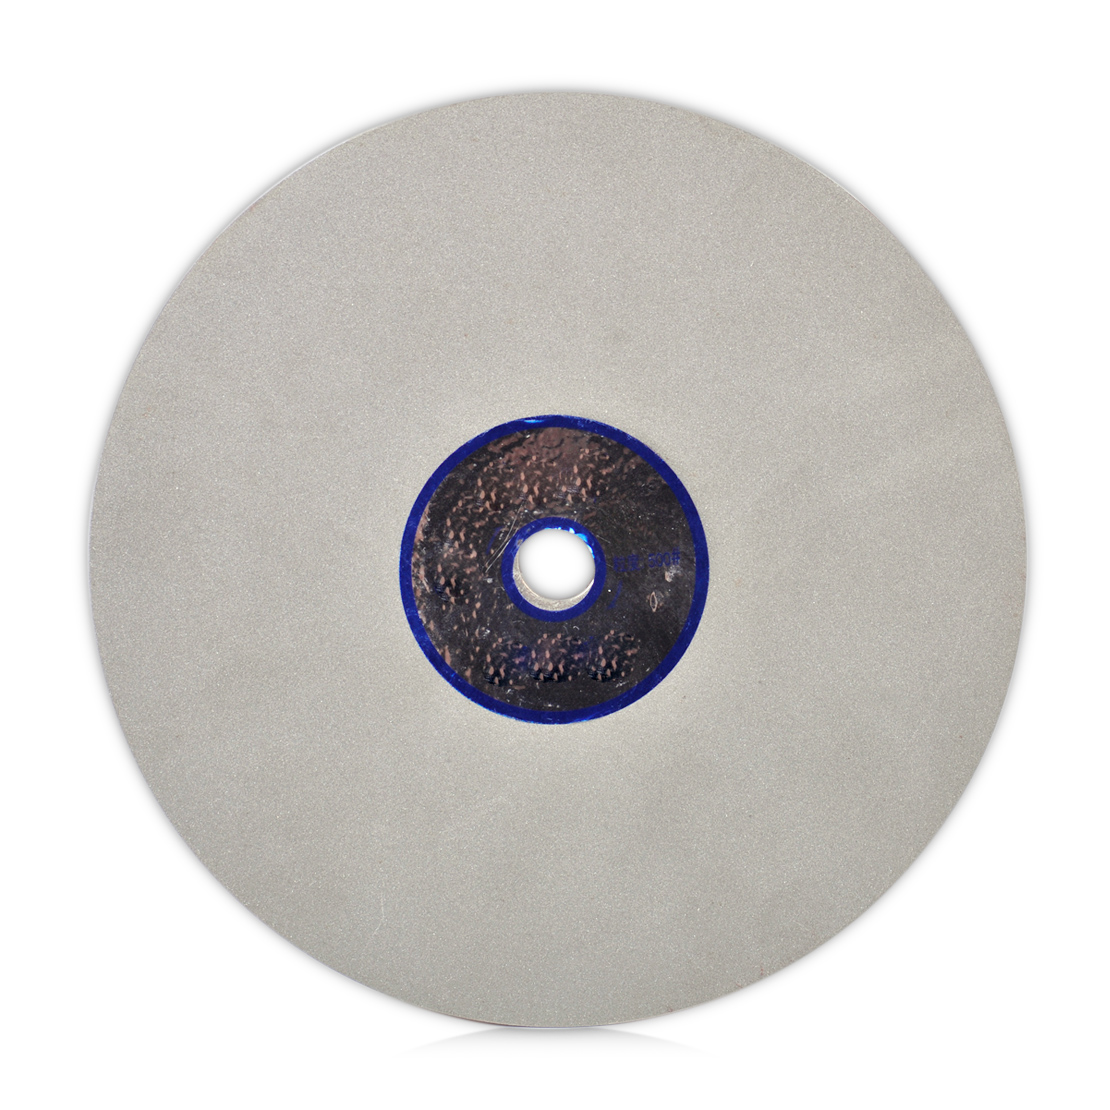 Grinding Disc 6 Quot Diamond Coated Flat Lap Wheel For Lapidary Grinding